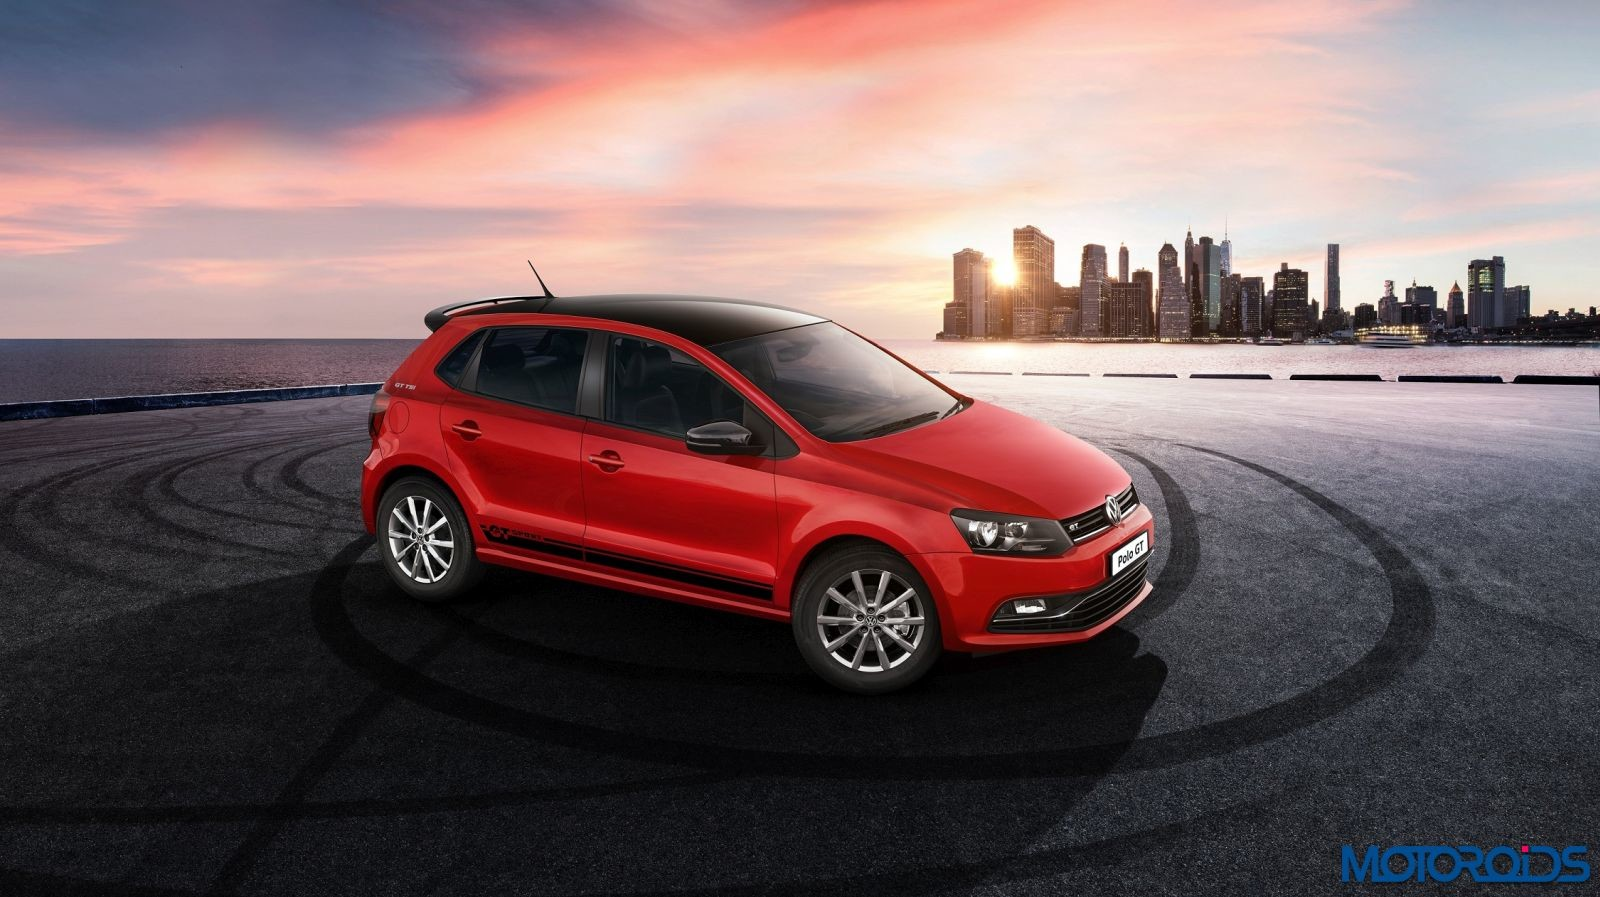 volkswagen polo gt sport launched in india motoroids. Black Bedroom Furniture Sets. Home Design Ideas